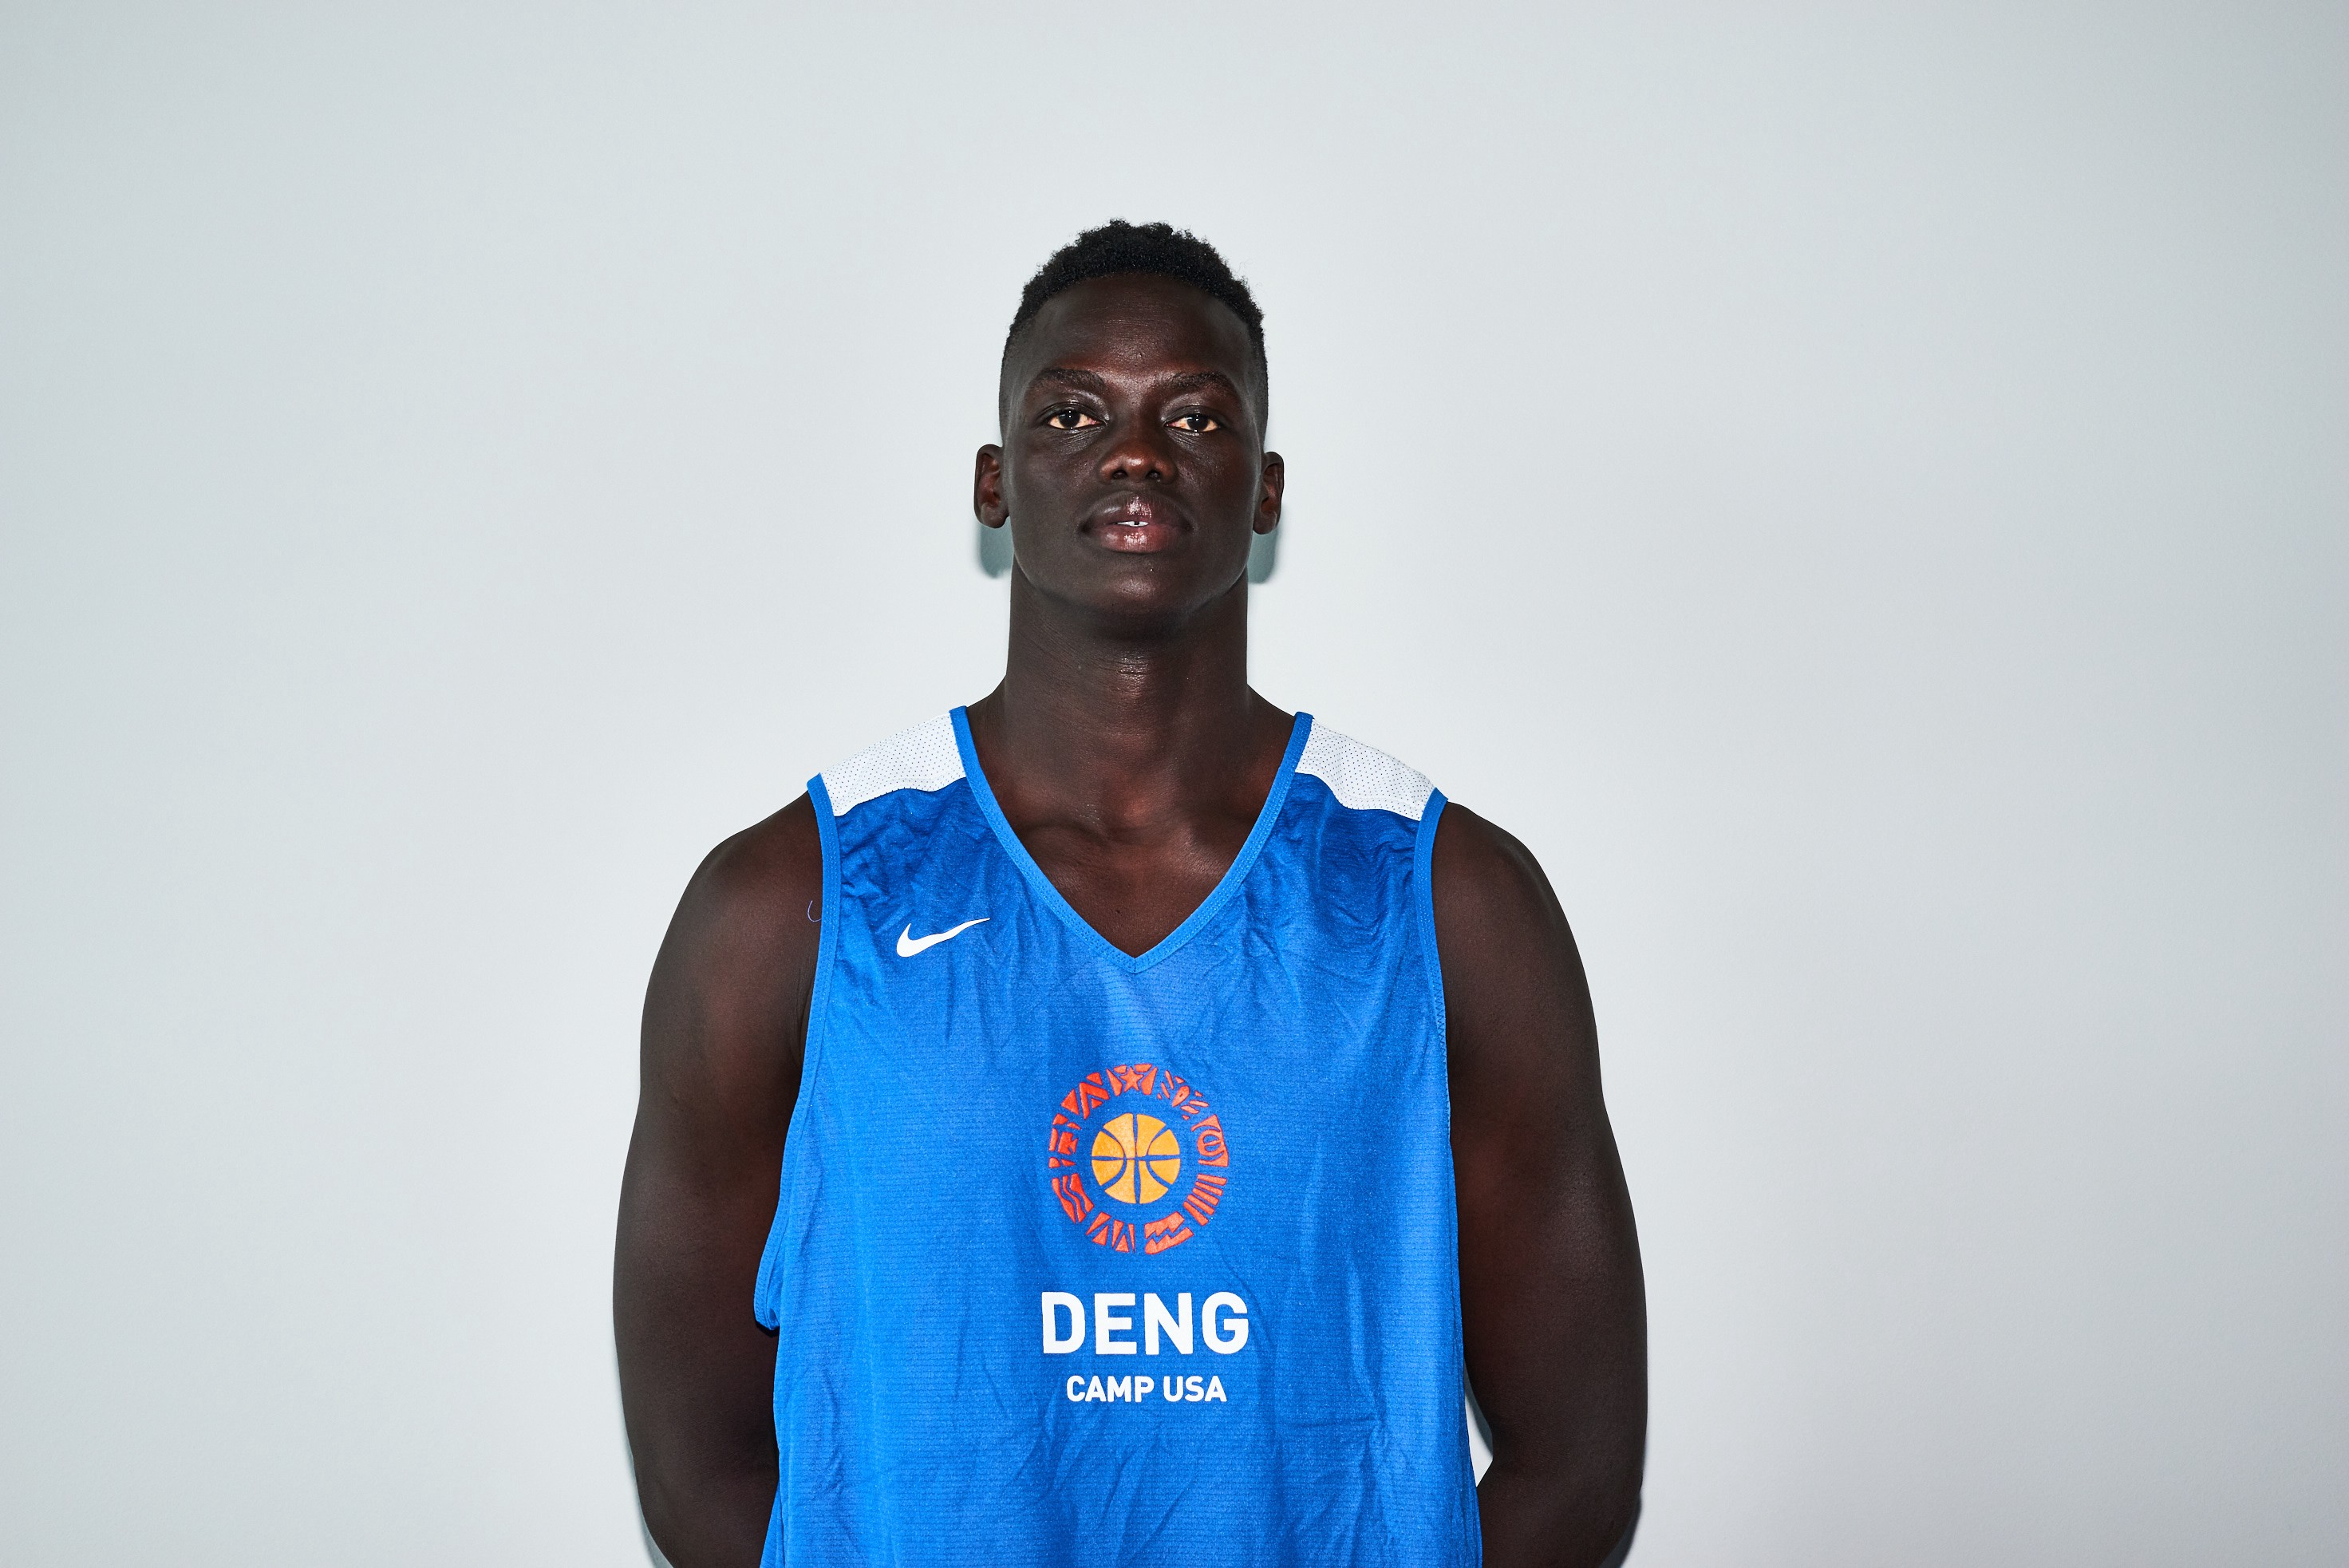 sneakers for cheap 11c19 04e49 Lancers get commitment from Abraham Deng - LancersBlog